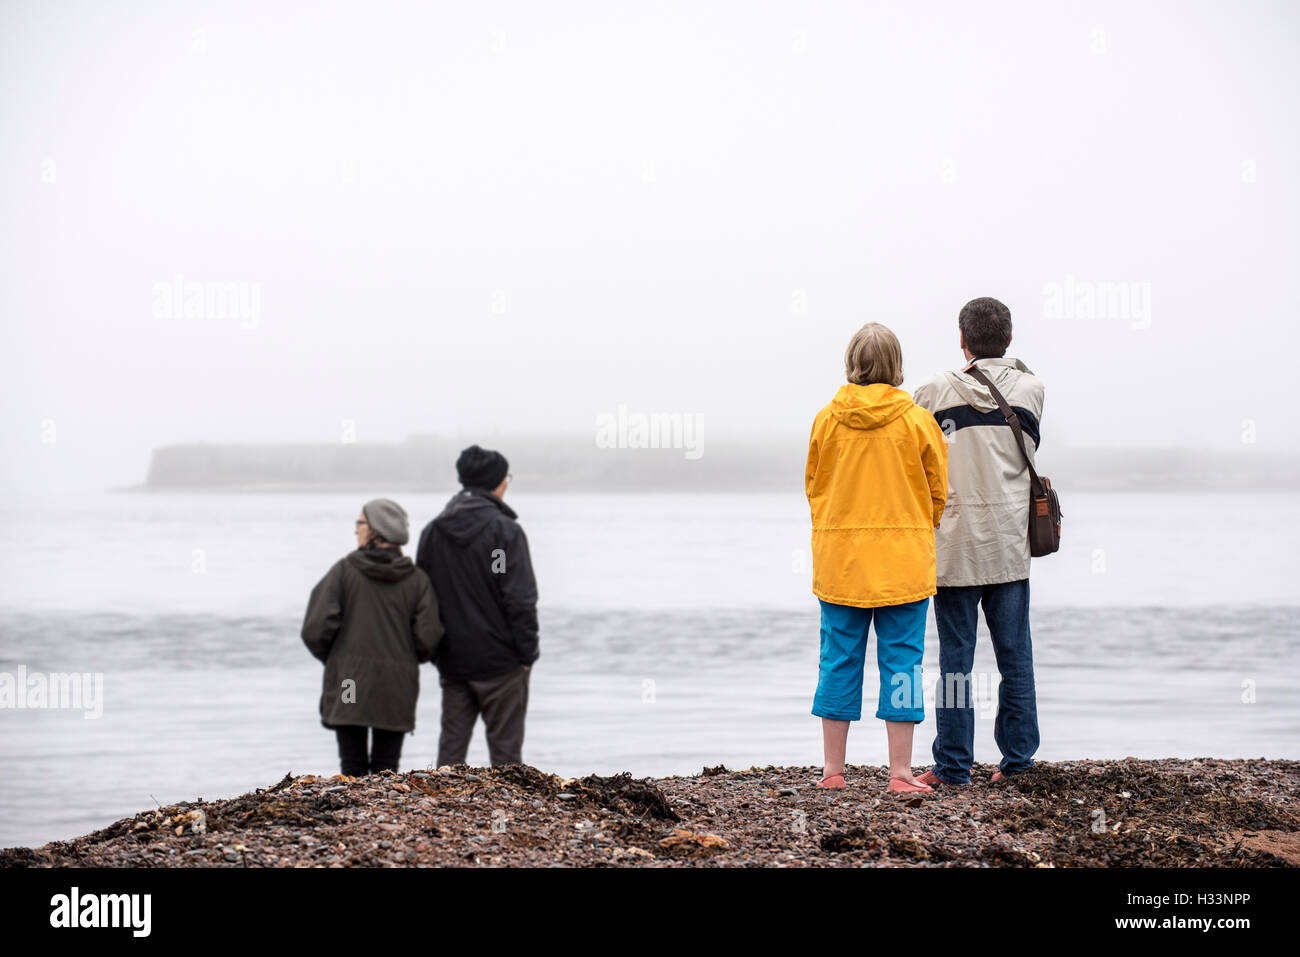 Whale and dolphin watchers looking for marine wildlife at Chanonry Point in the mist, Moray Firth, Scotland, UK - Stock Image